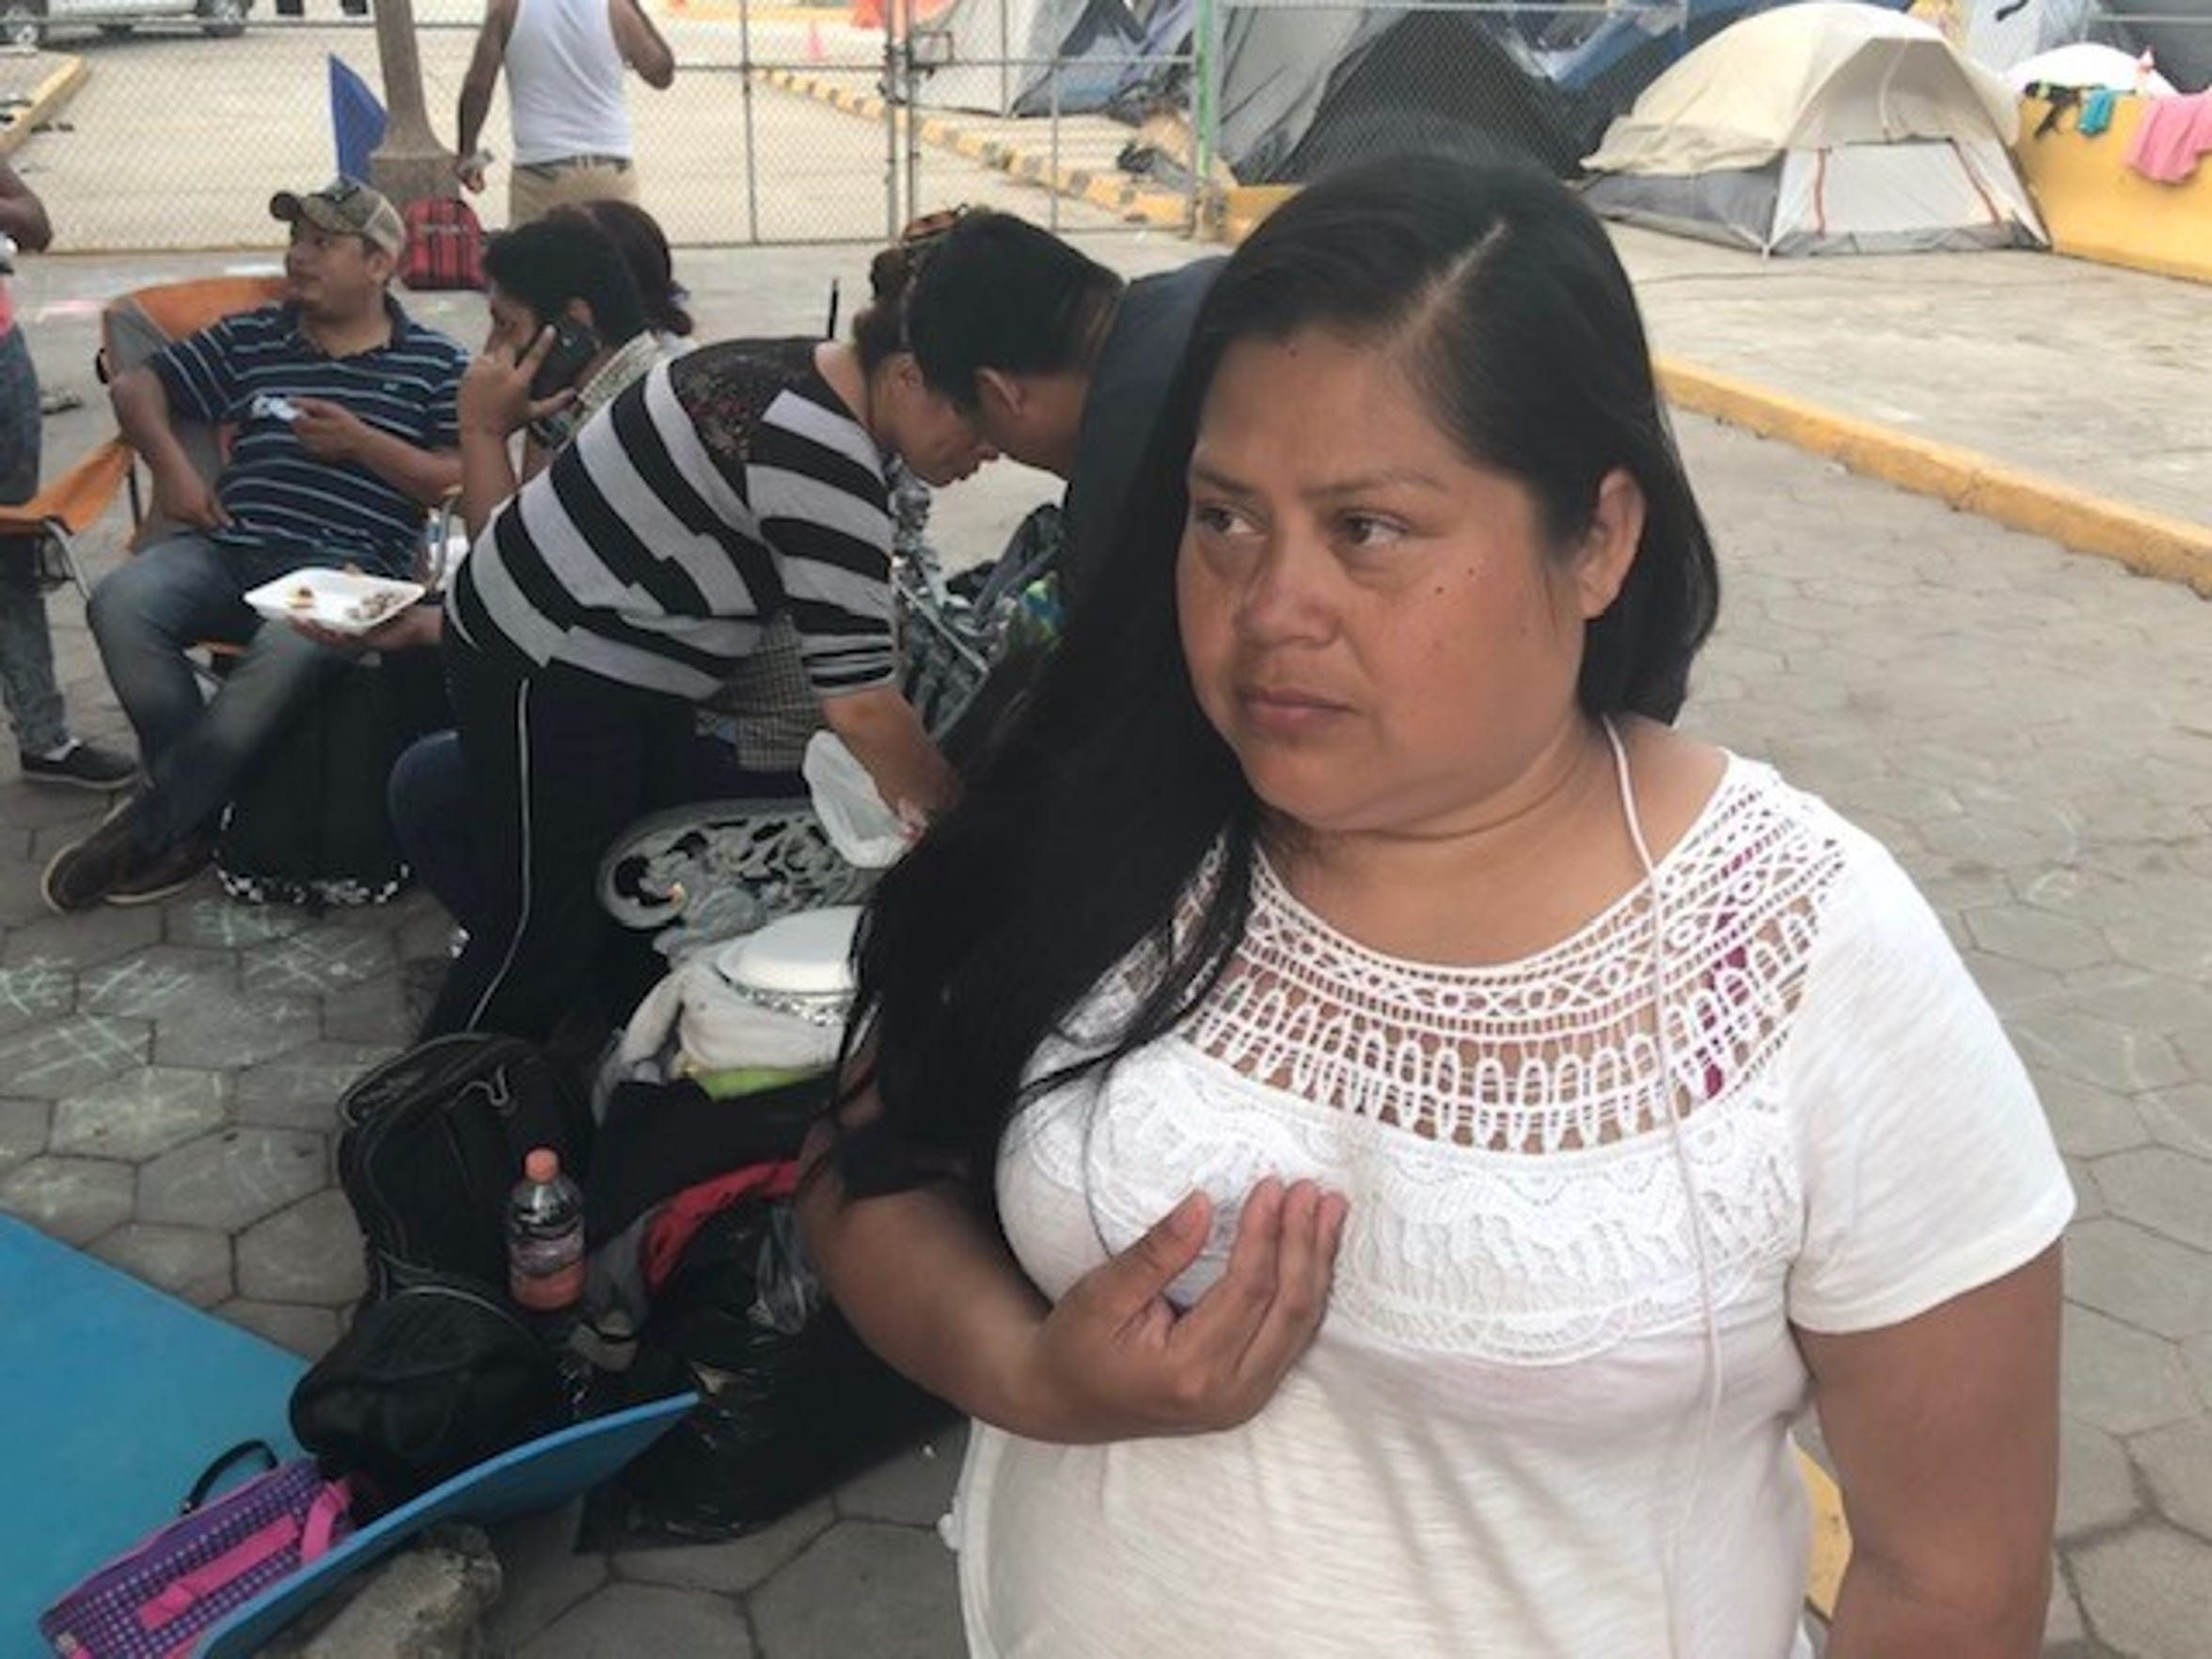 Edith Cruz talks about migrating from Honduras to seek asylum in the United States as she waits in Matamoros, Mexico, on April 4, 2018.